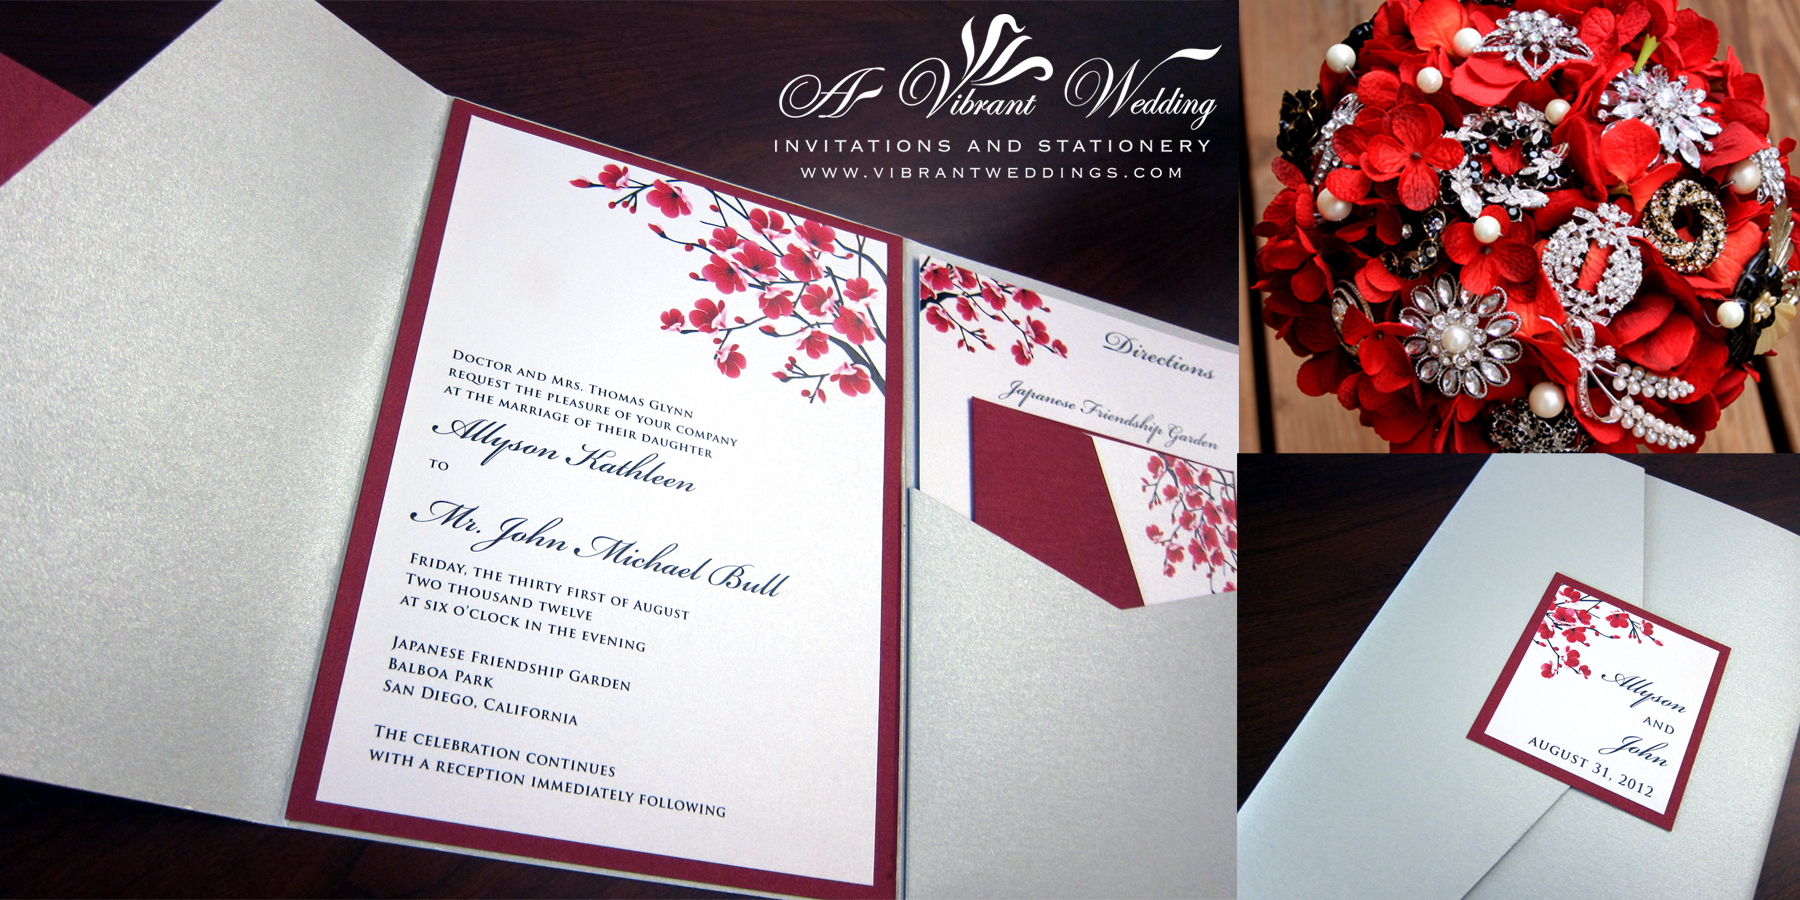 Red designs a vibrant wedding silver and red wedding invitation with cherry blossoms design stopboris Image collections